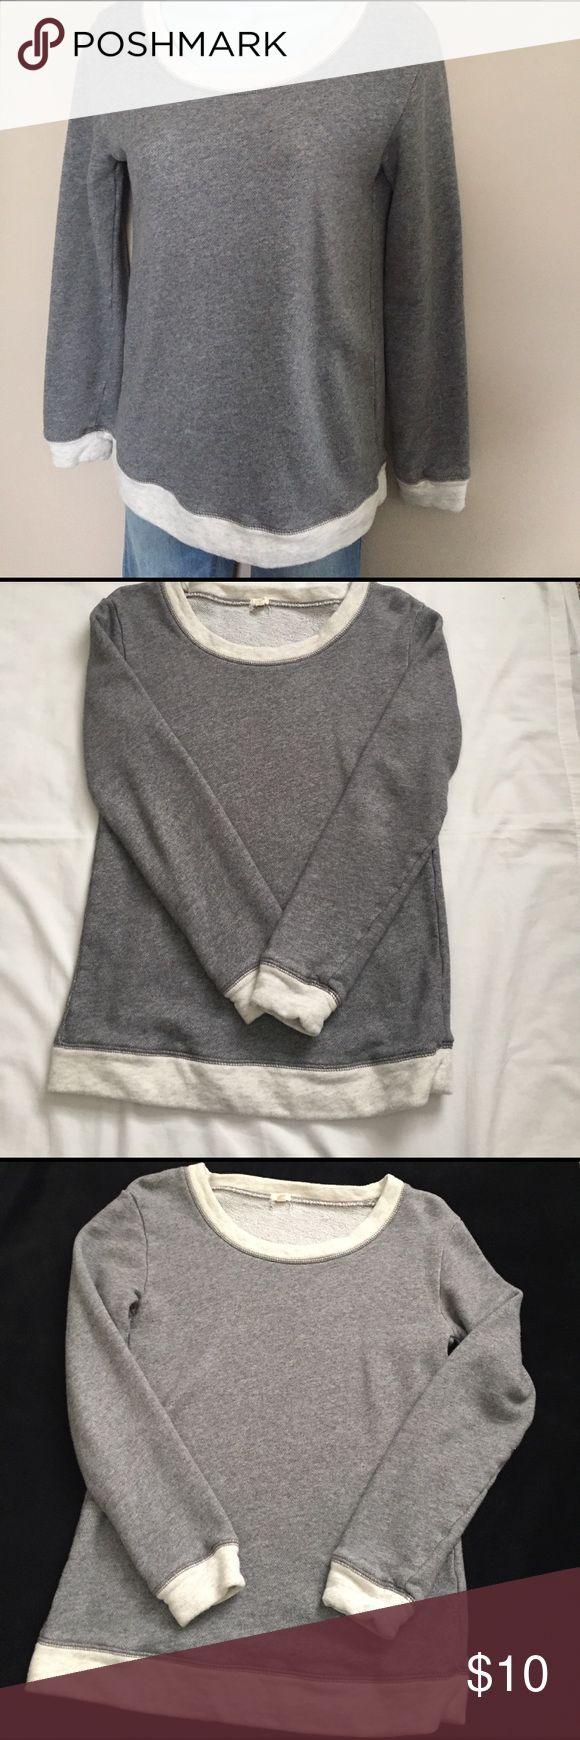 J Crew XS Sweatshirt Longer So Cute J Crew X Small longer Sweatshirt .  Shirt is gray with light gray trim at neck , wrists and bottom .  Excellent condition and smoke free home .  Looks great with leggings and any jeans or pants ! J. Crew Tops Sweatshirts & Hoodies